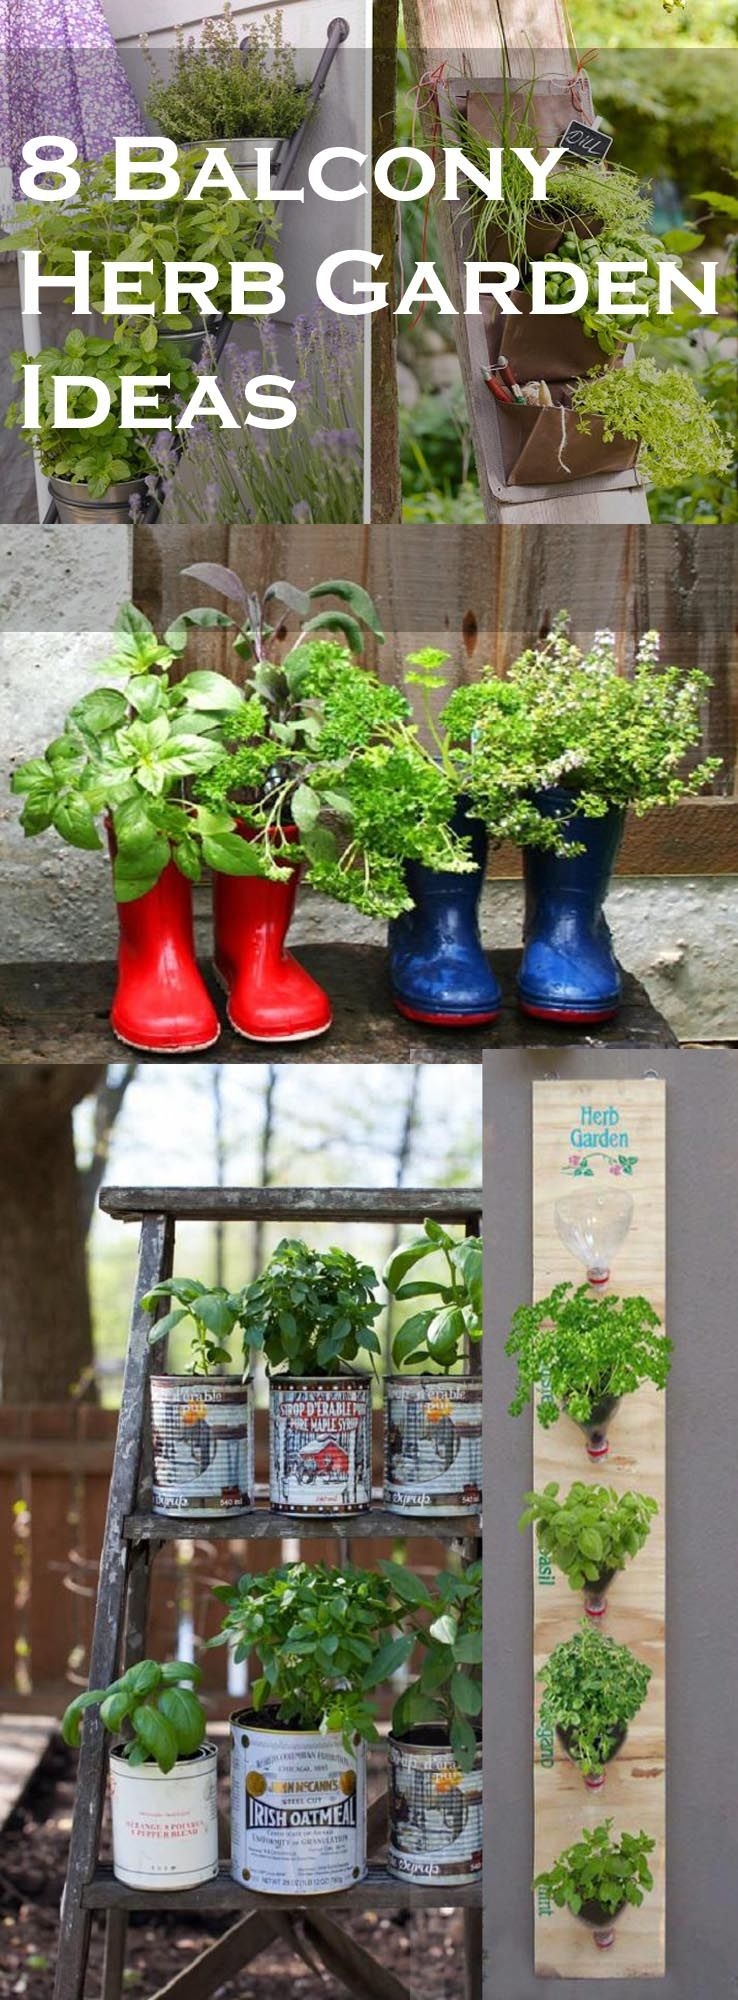 8 Balcony Herb Garden Ideas You Would Like to Try | Pinterest ...